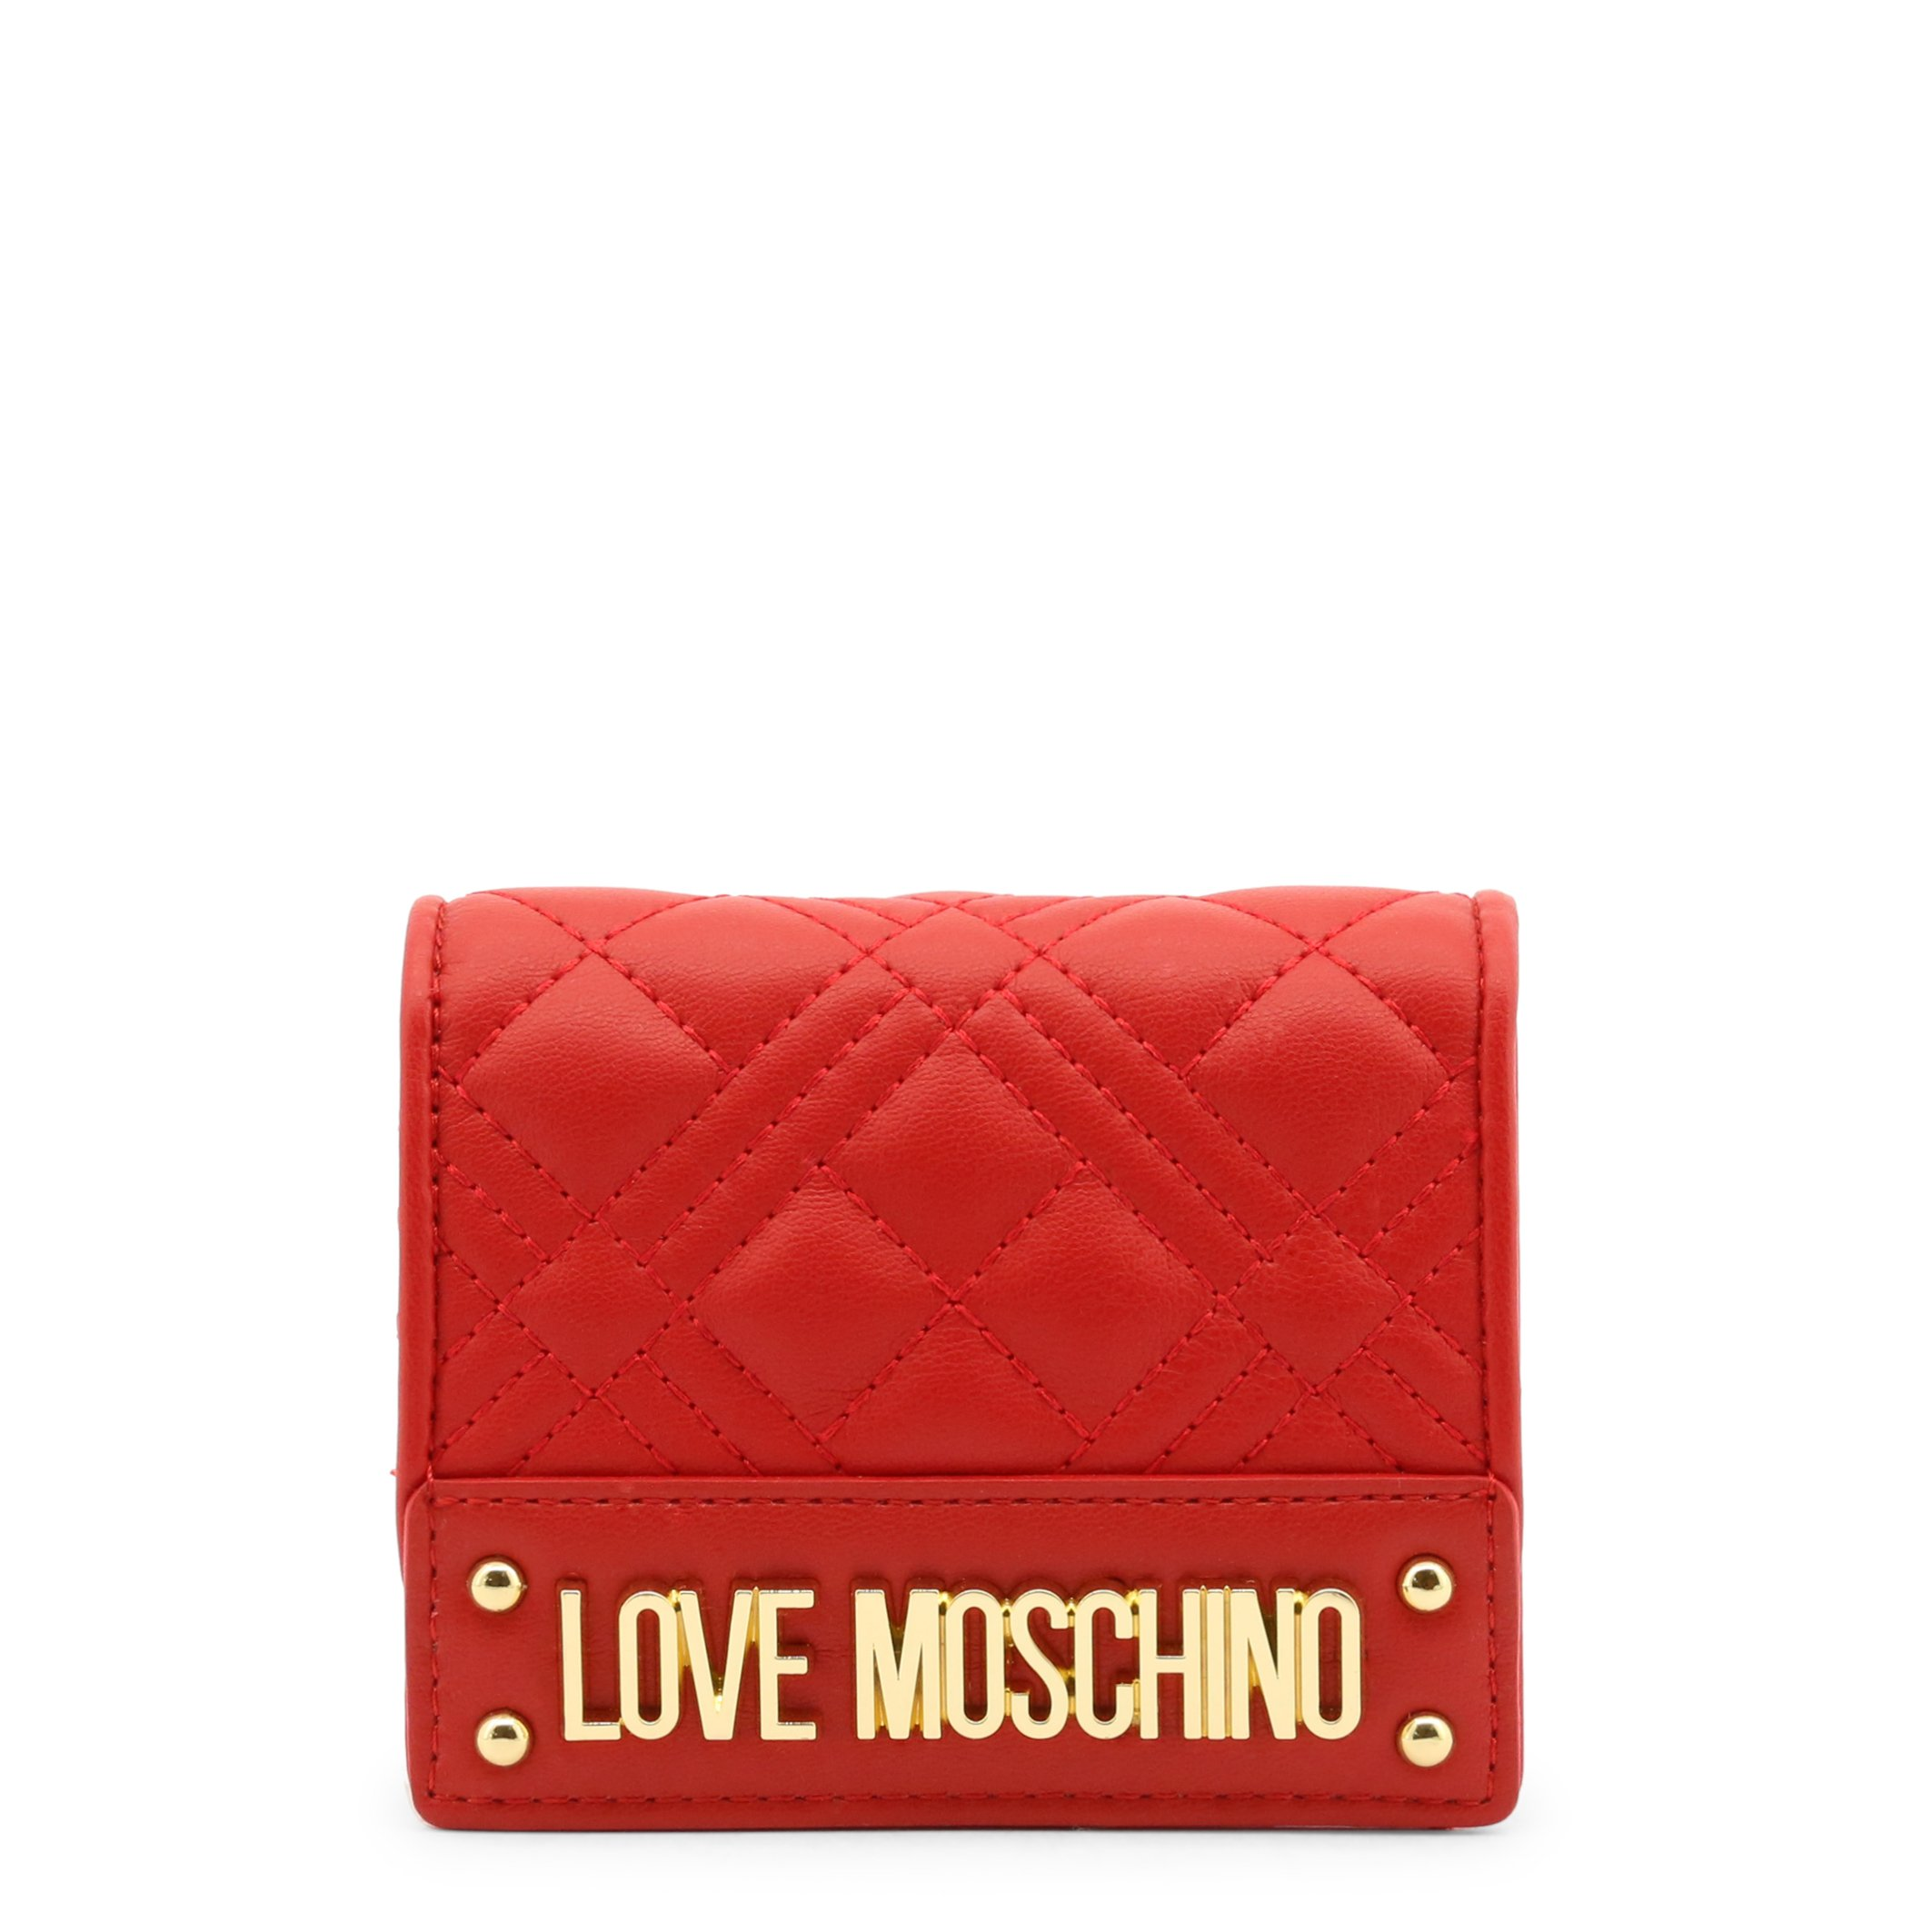 Love Moschino Women's Wallet Various Colours JC5601PP1DLA0 - red NOSIZE